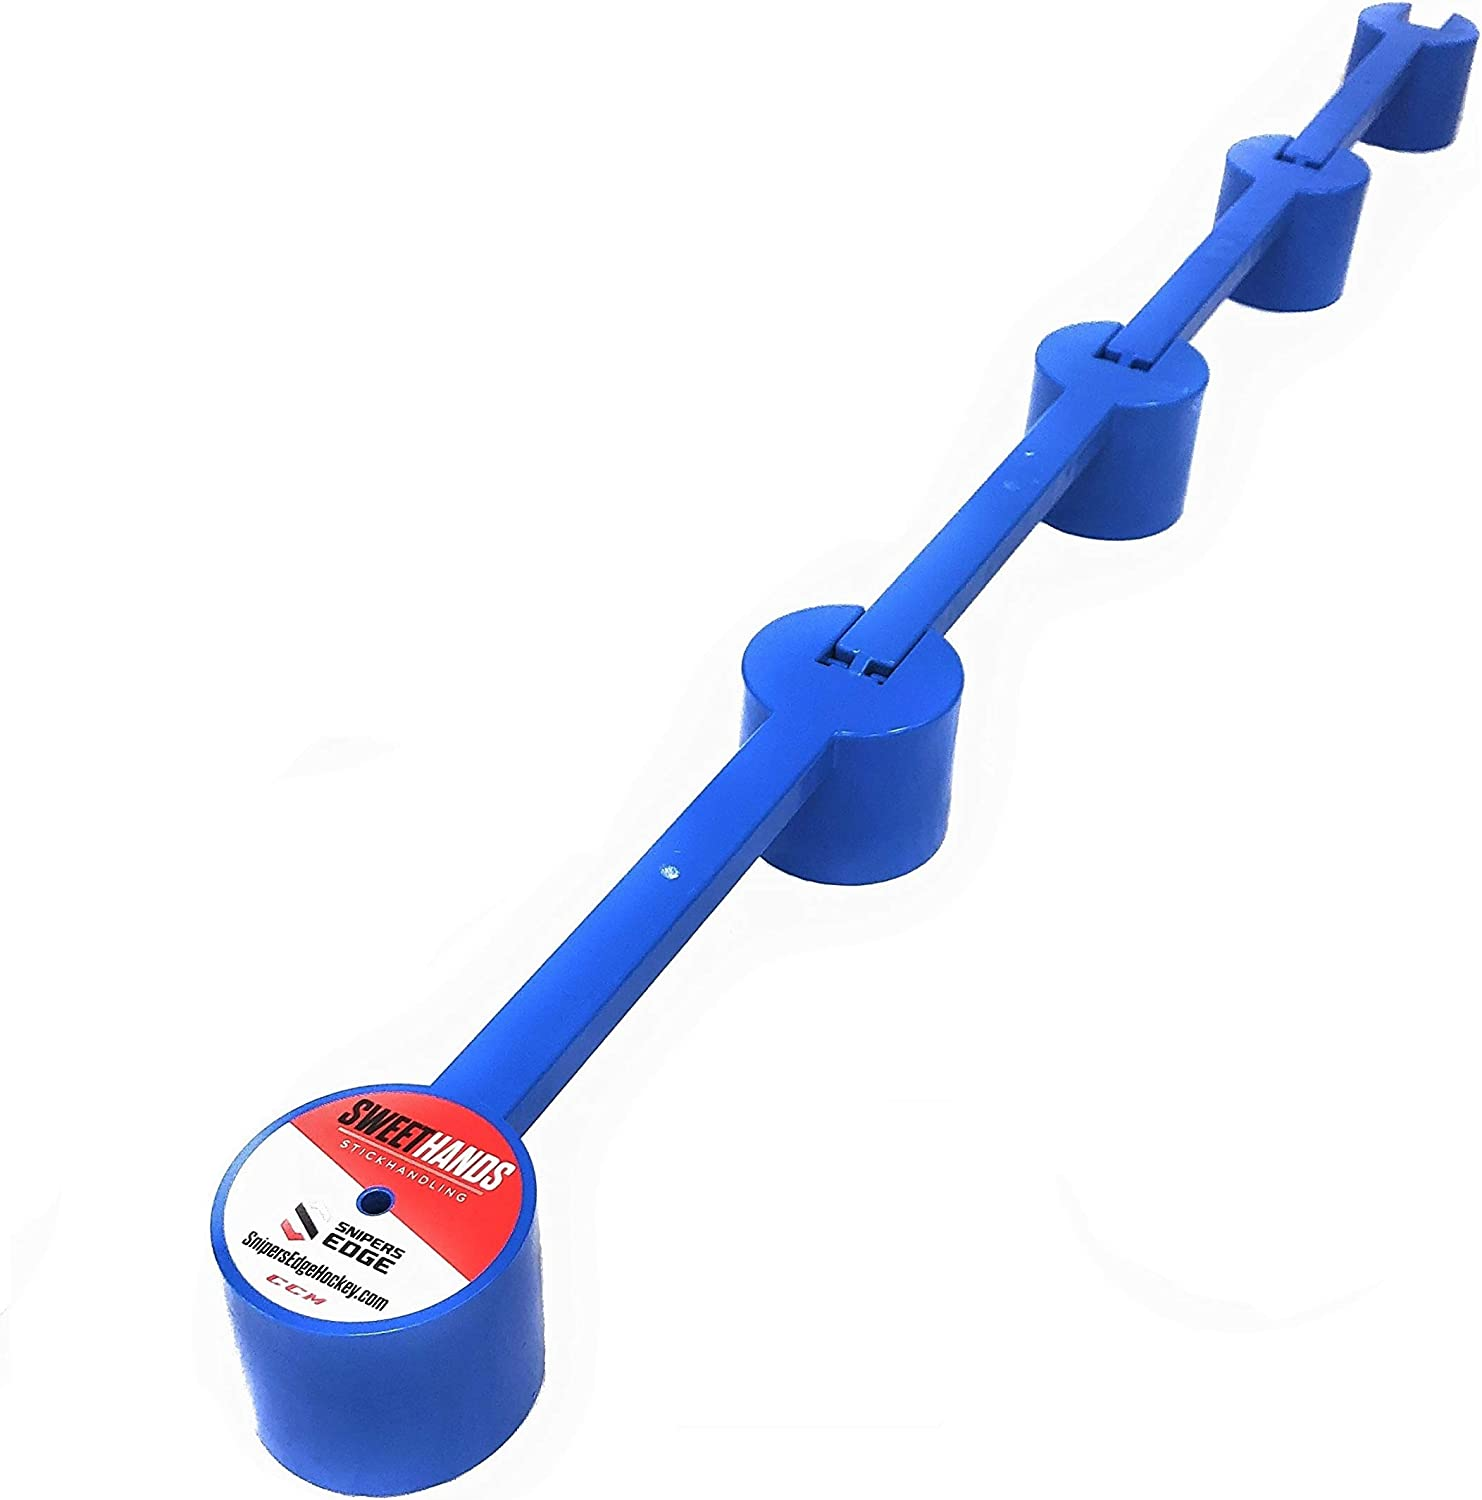 Sniper's Edge Hockey Hands Mini Stickhandling Trainer with 4 Sections : Hockey Training Aids : Sports & Outdoors